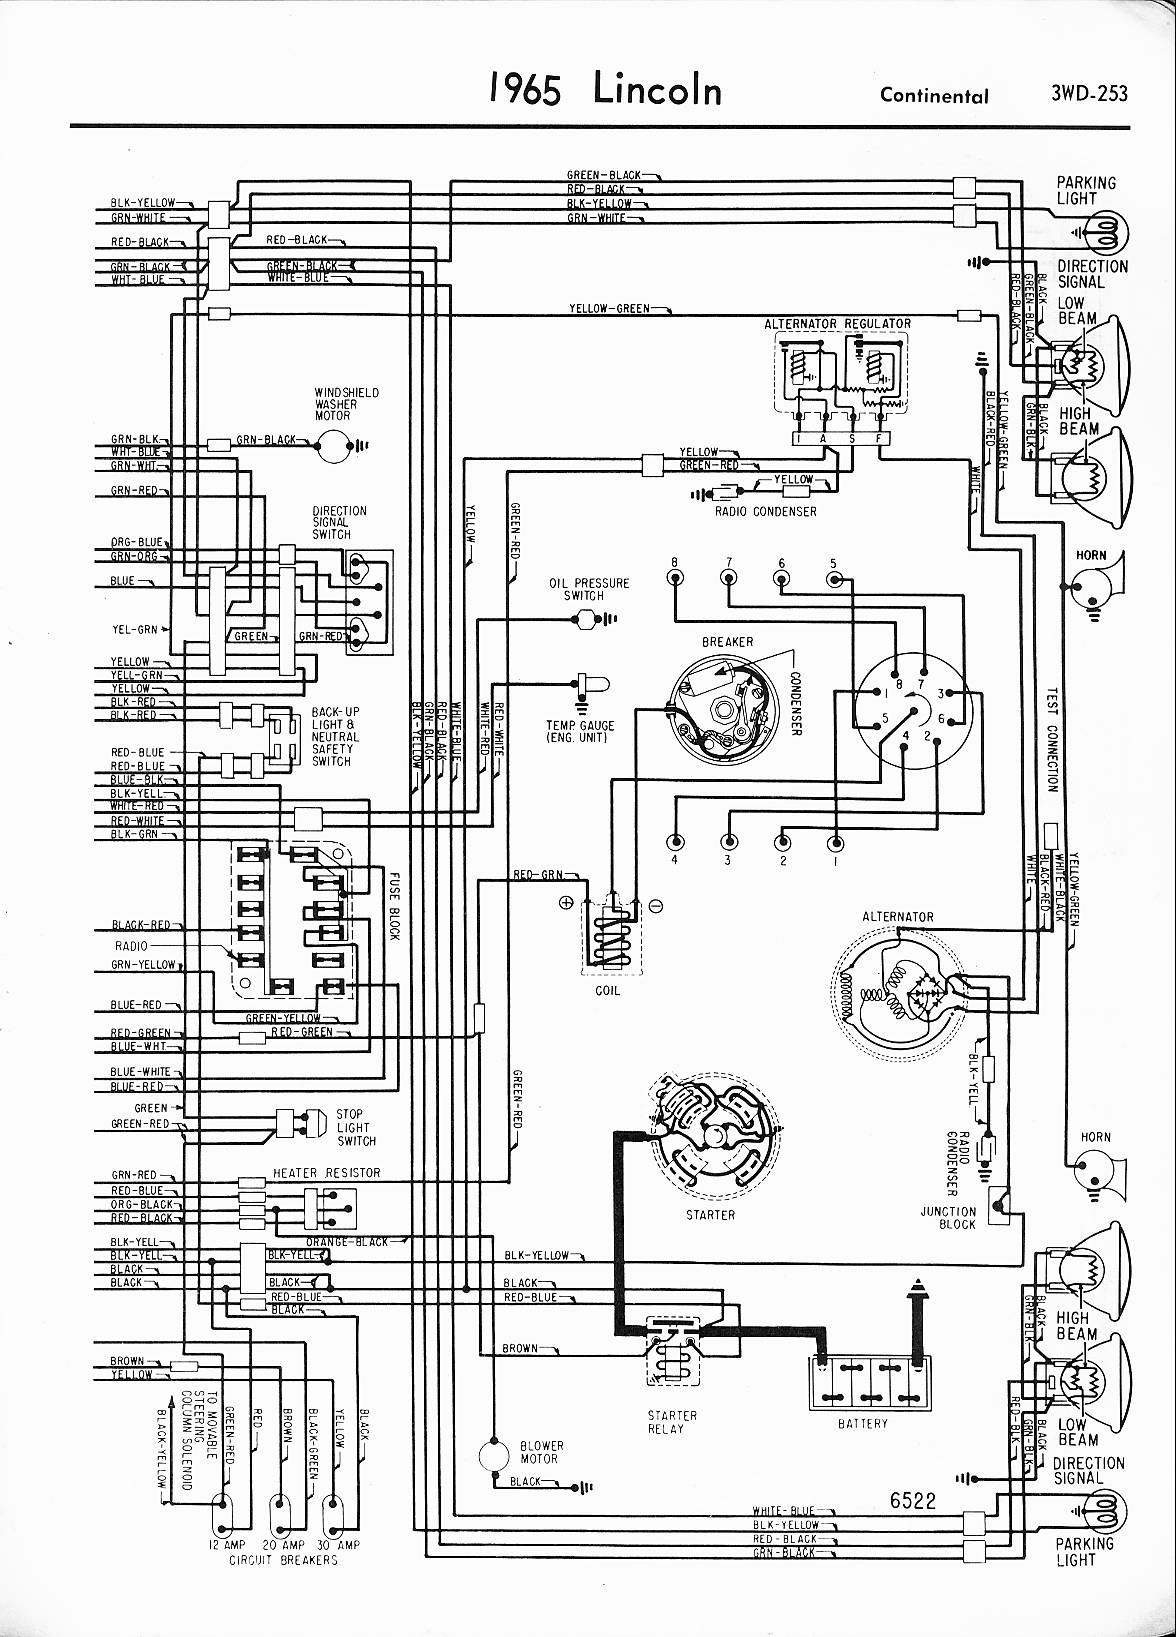 1967 Camaro Parts Steves Camaro Parts 27 further P 0900c152800519e6 also XP3w 16145 besides 1969 Mustang Wiring Diagram together with Alternator Wiring One Wire 8981. on 1966 chevelle wiring diagram